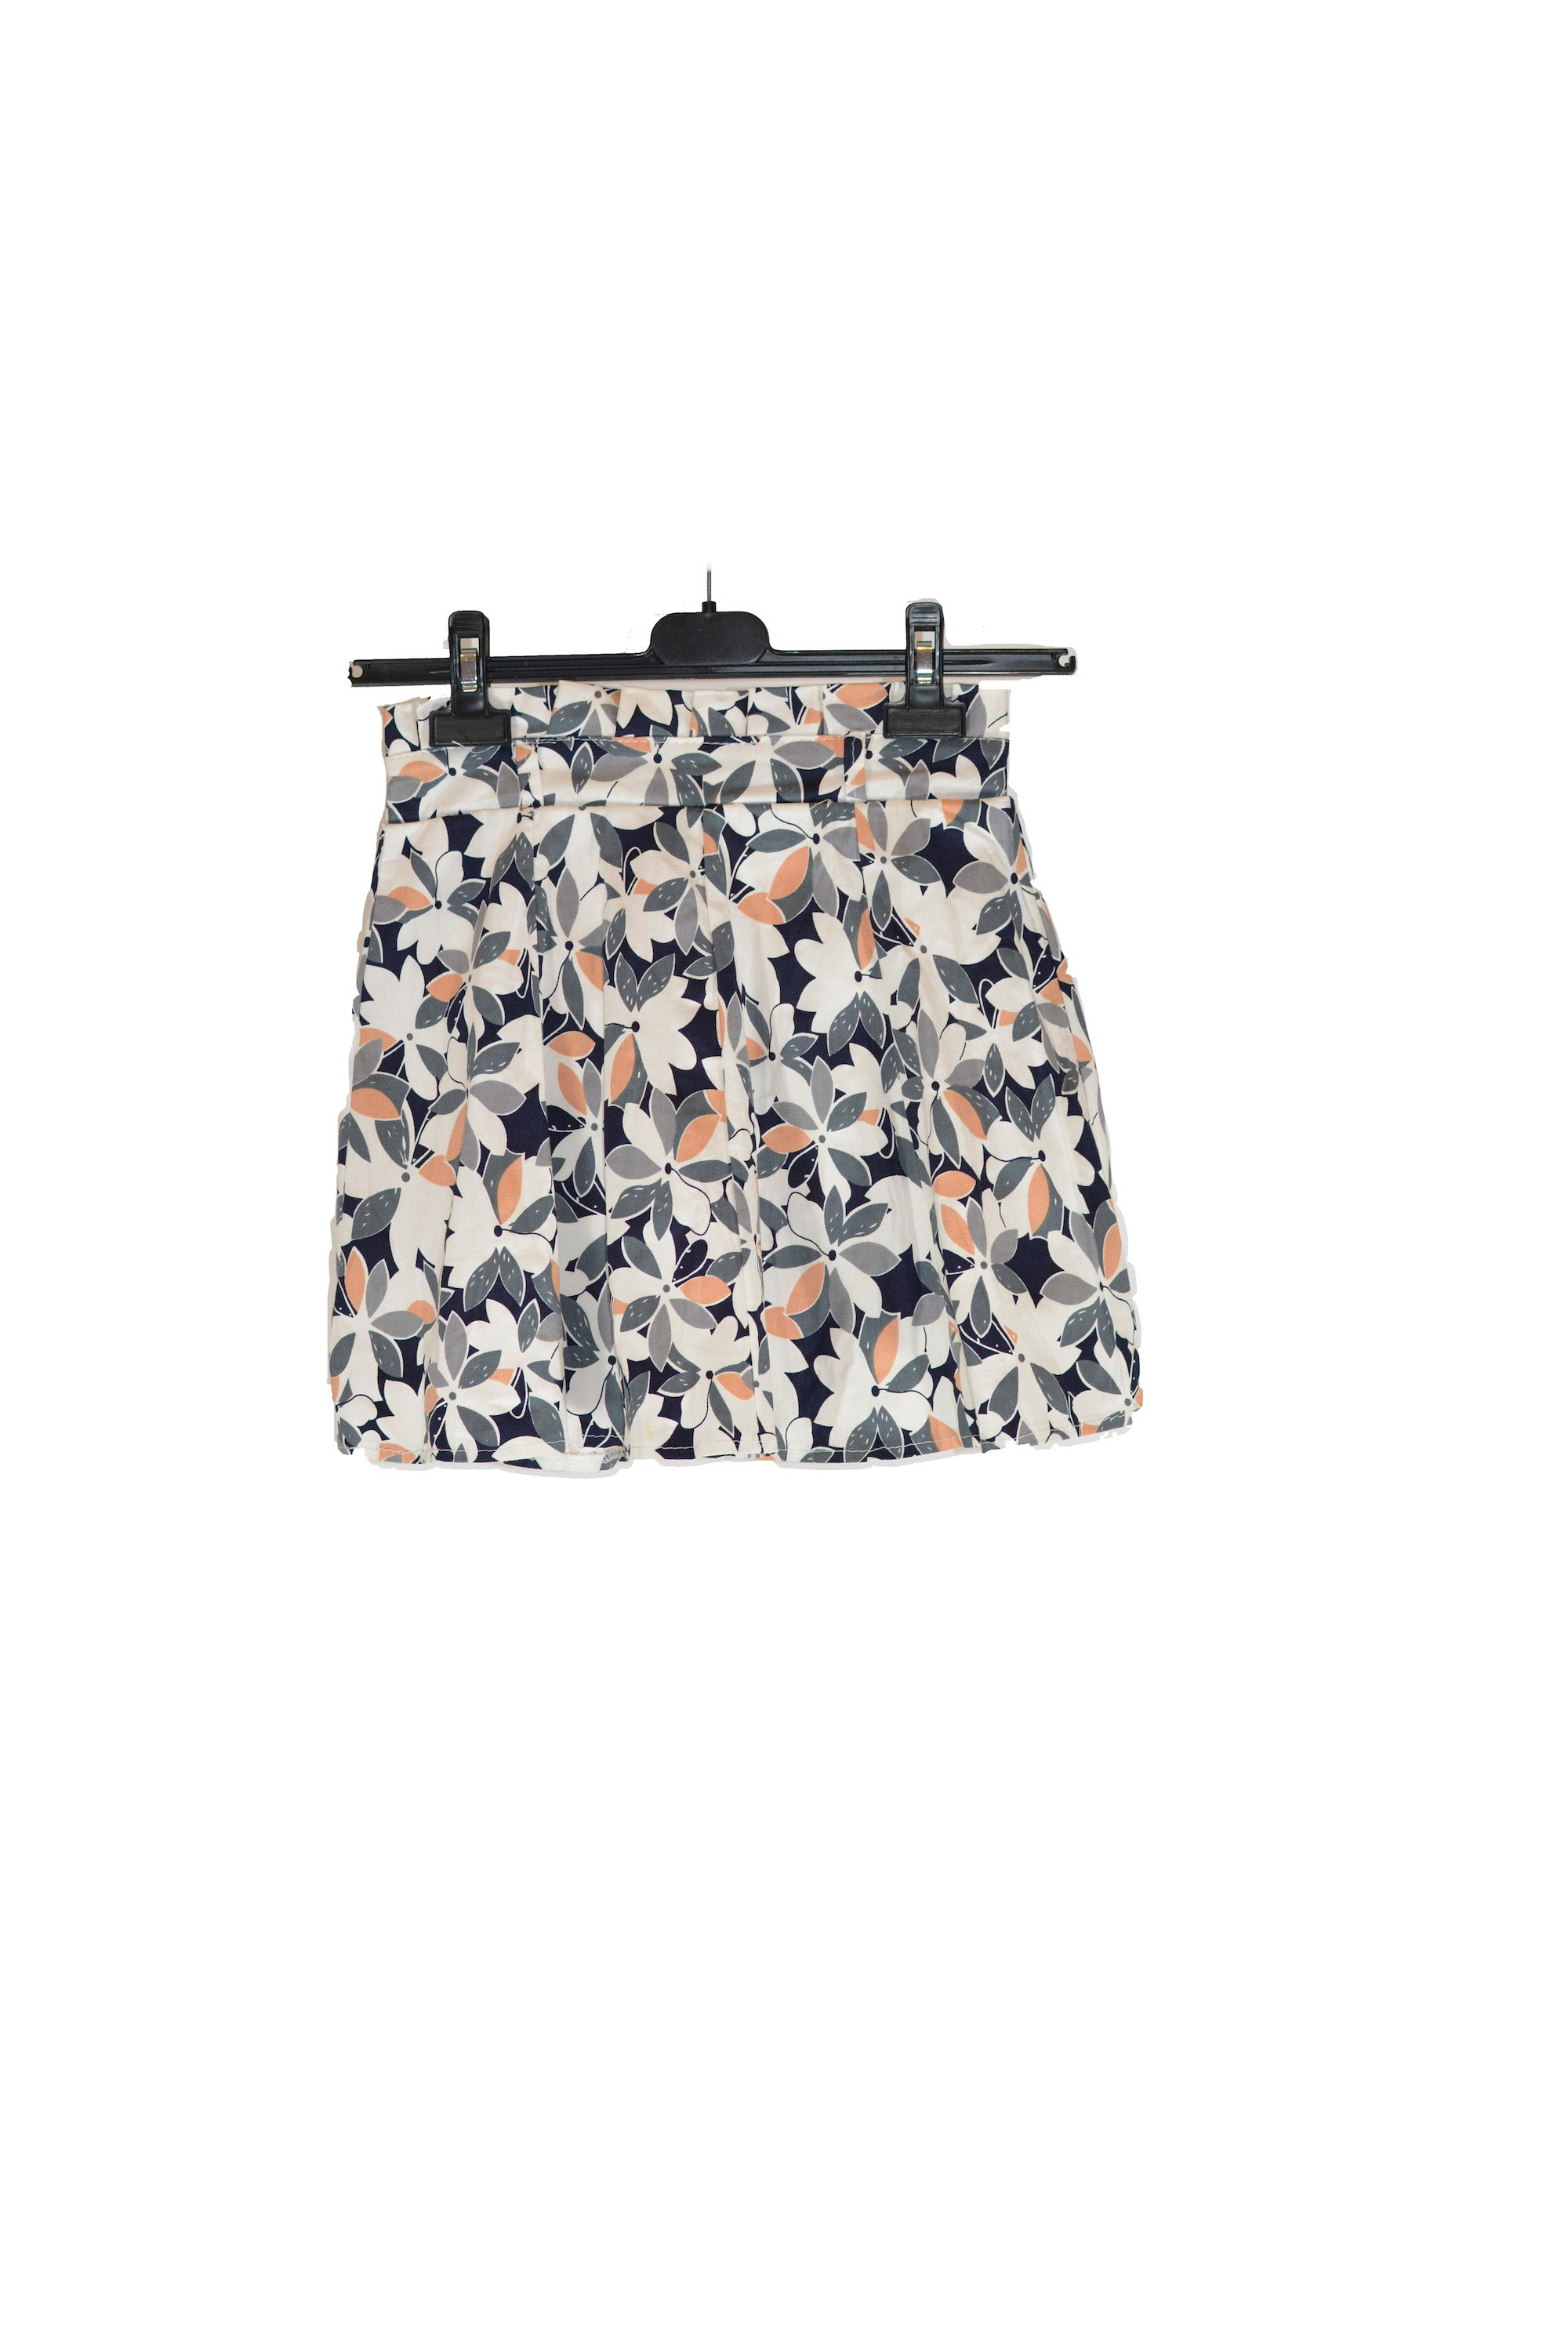 Grey and Pink Pleated Floral Skirt With Elastic Waistband